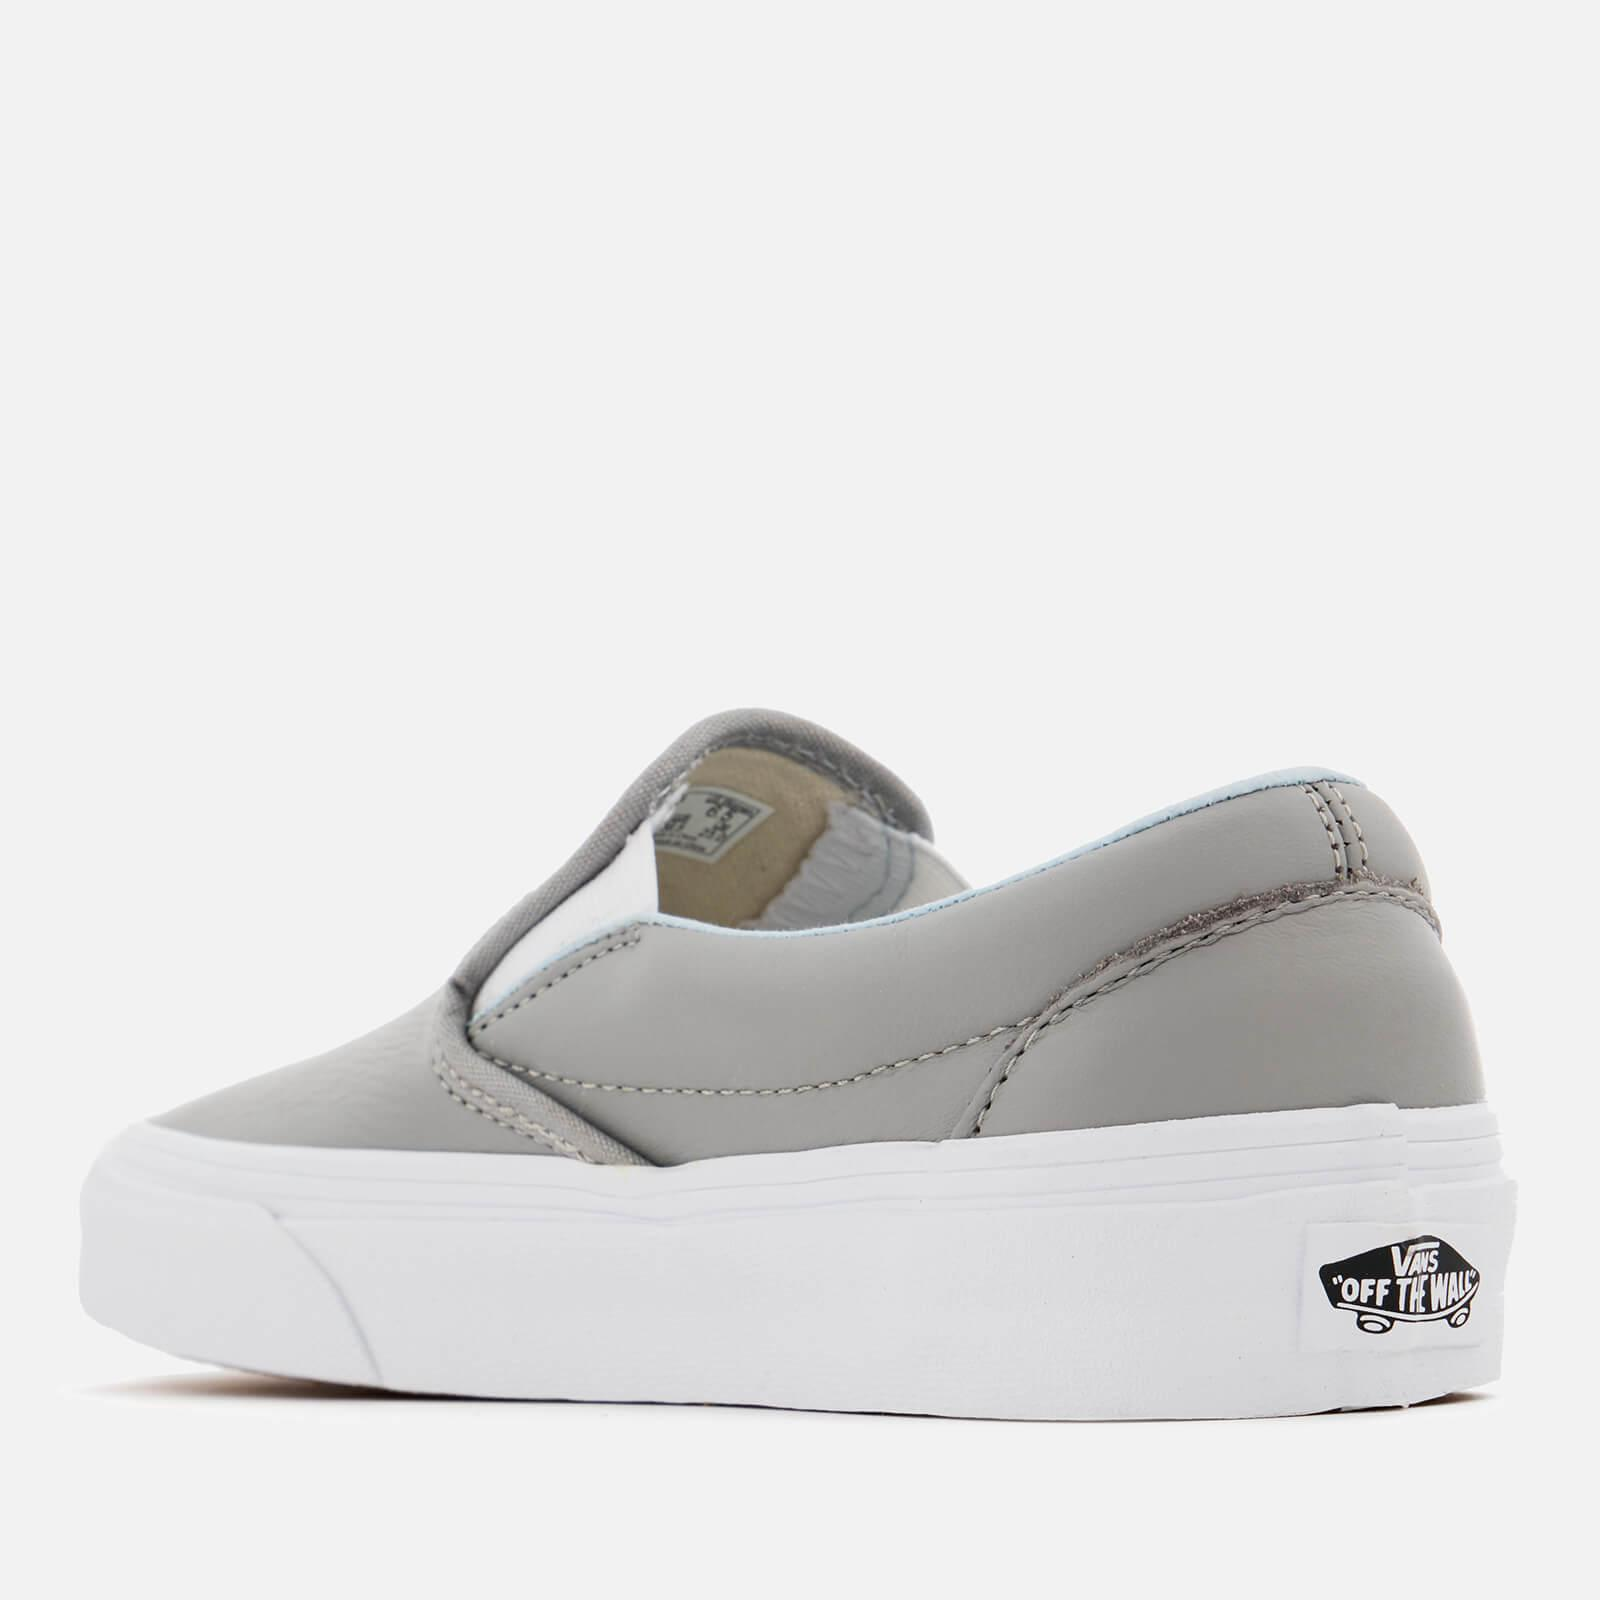 Vans Classic Leather Slip-on Trainers in Grey (Grey)